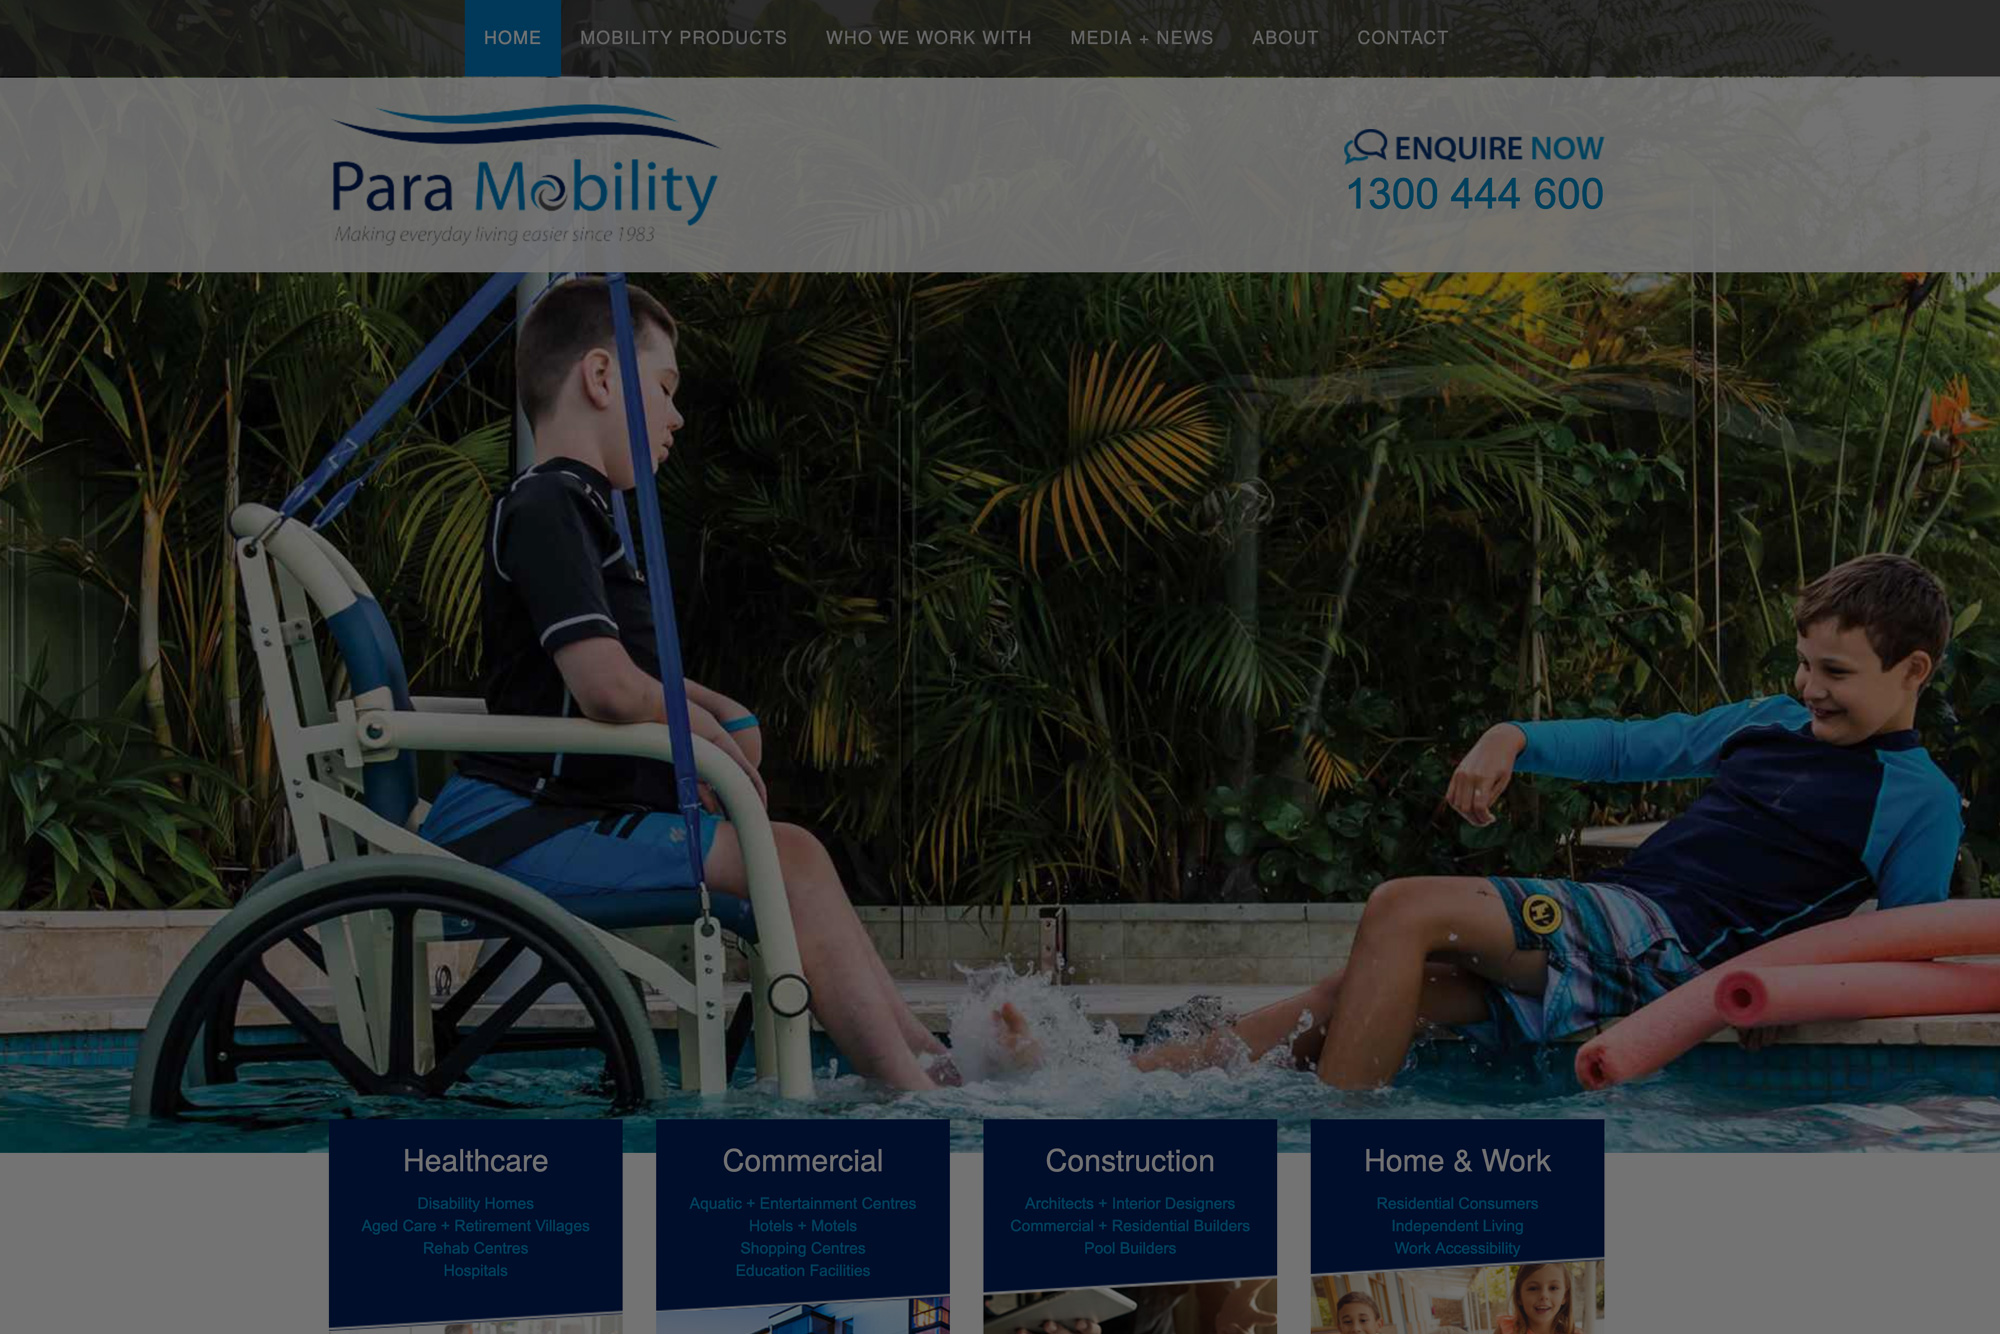 Paramobility website and corporate rebrand